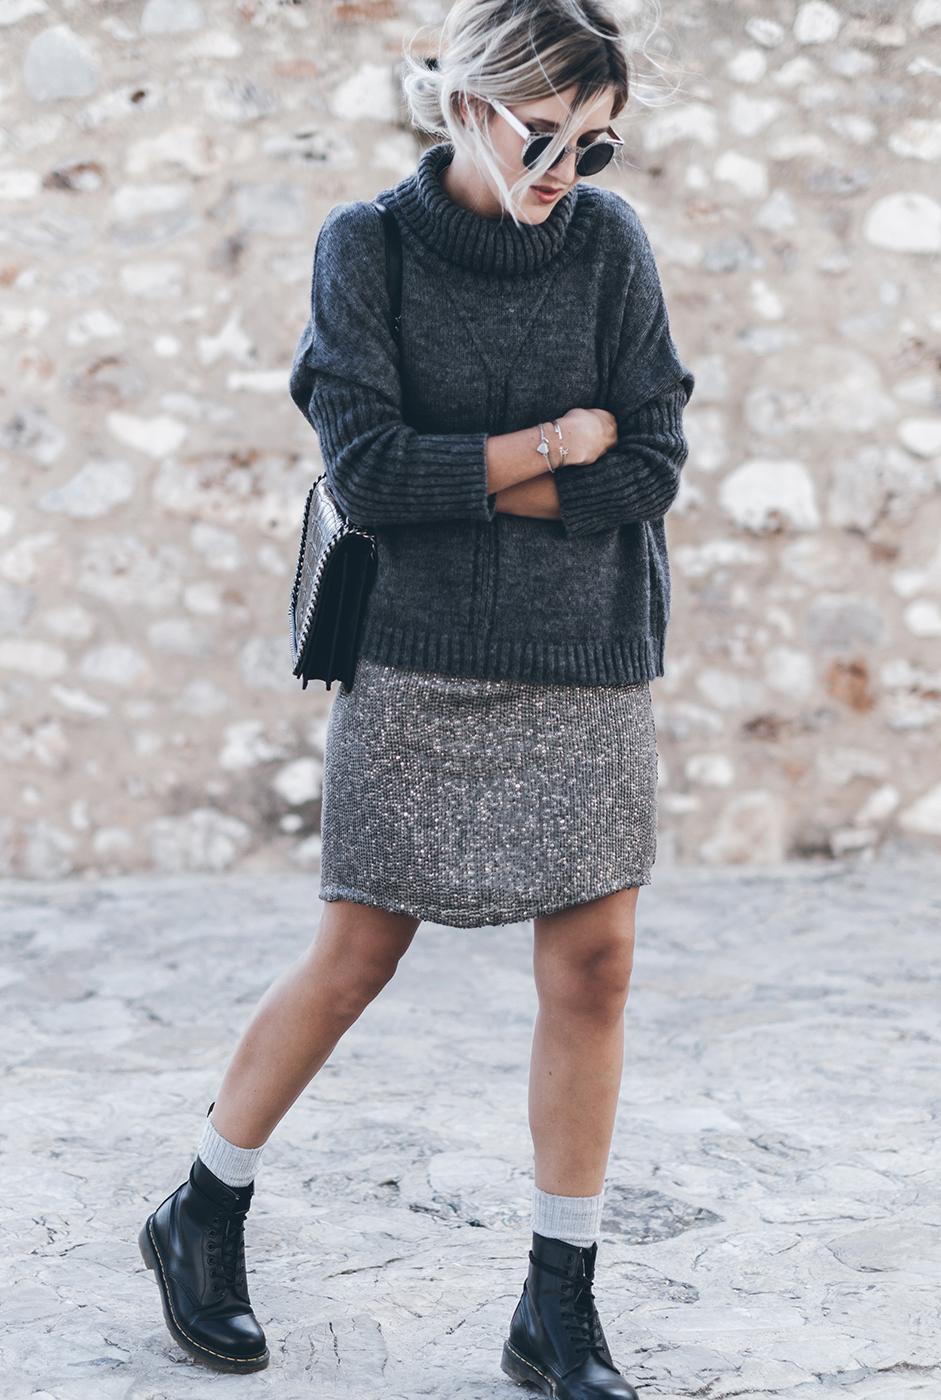 Wear your grey knit sweater with a grey skirt, grey socks and a pair of Dr. Martens. Via Jacqueline Mikuta. Sweater: VILA, Skirt – Anncha, Boots: Dr.Martens, Bag: Zara, Sunglasses: ZeroUV